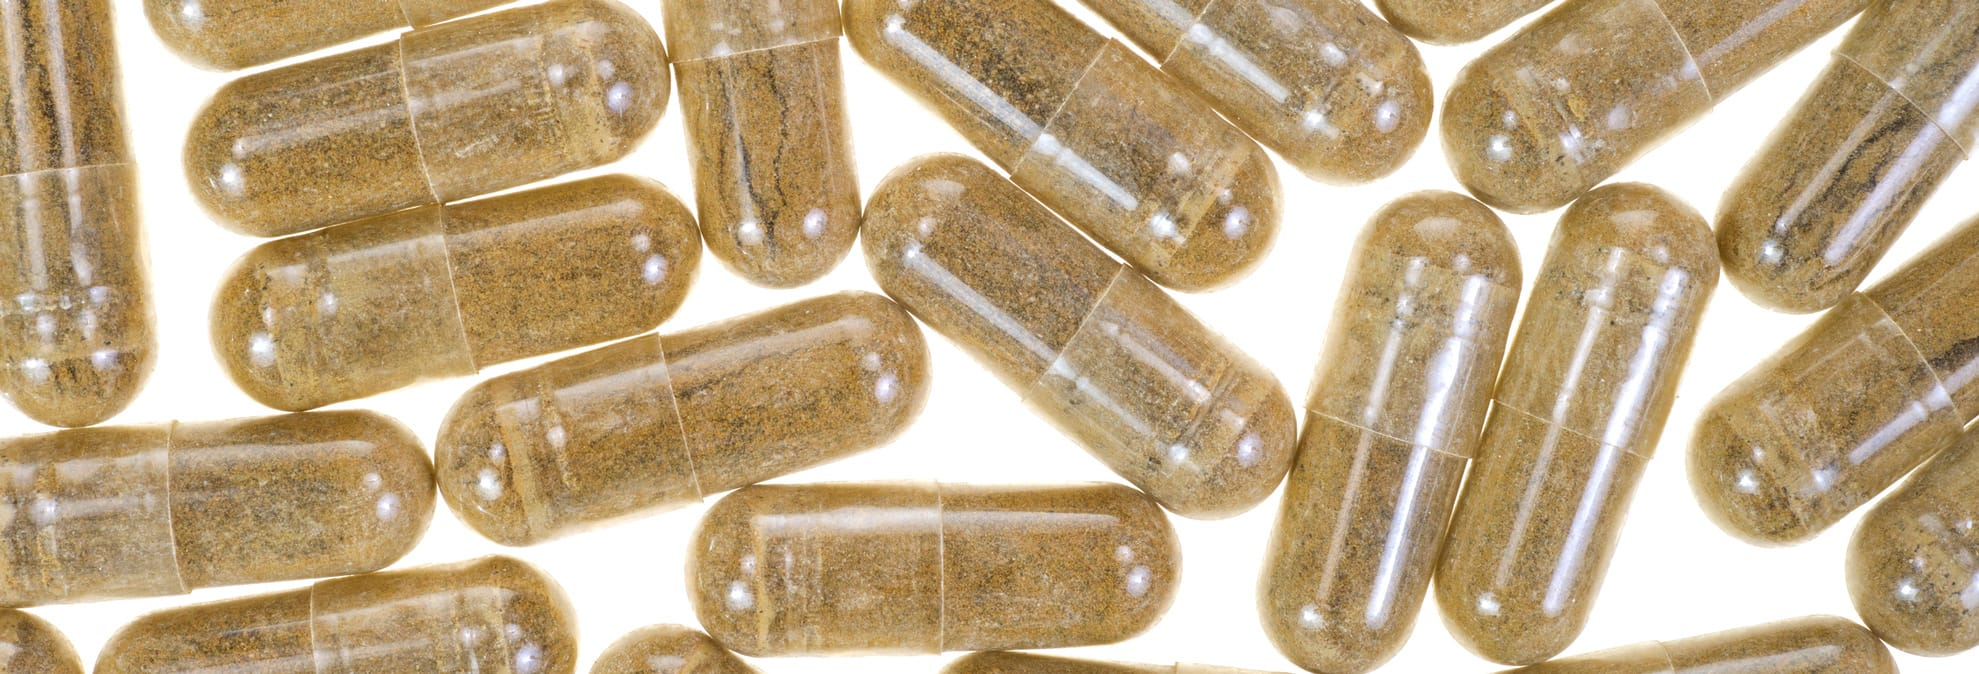 Liver Damage From Supplements Is on the Rise - Consumer Reports